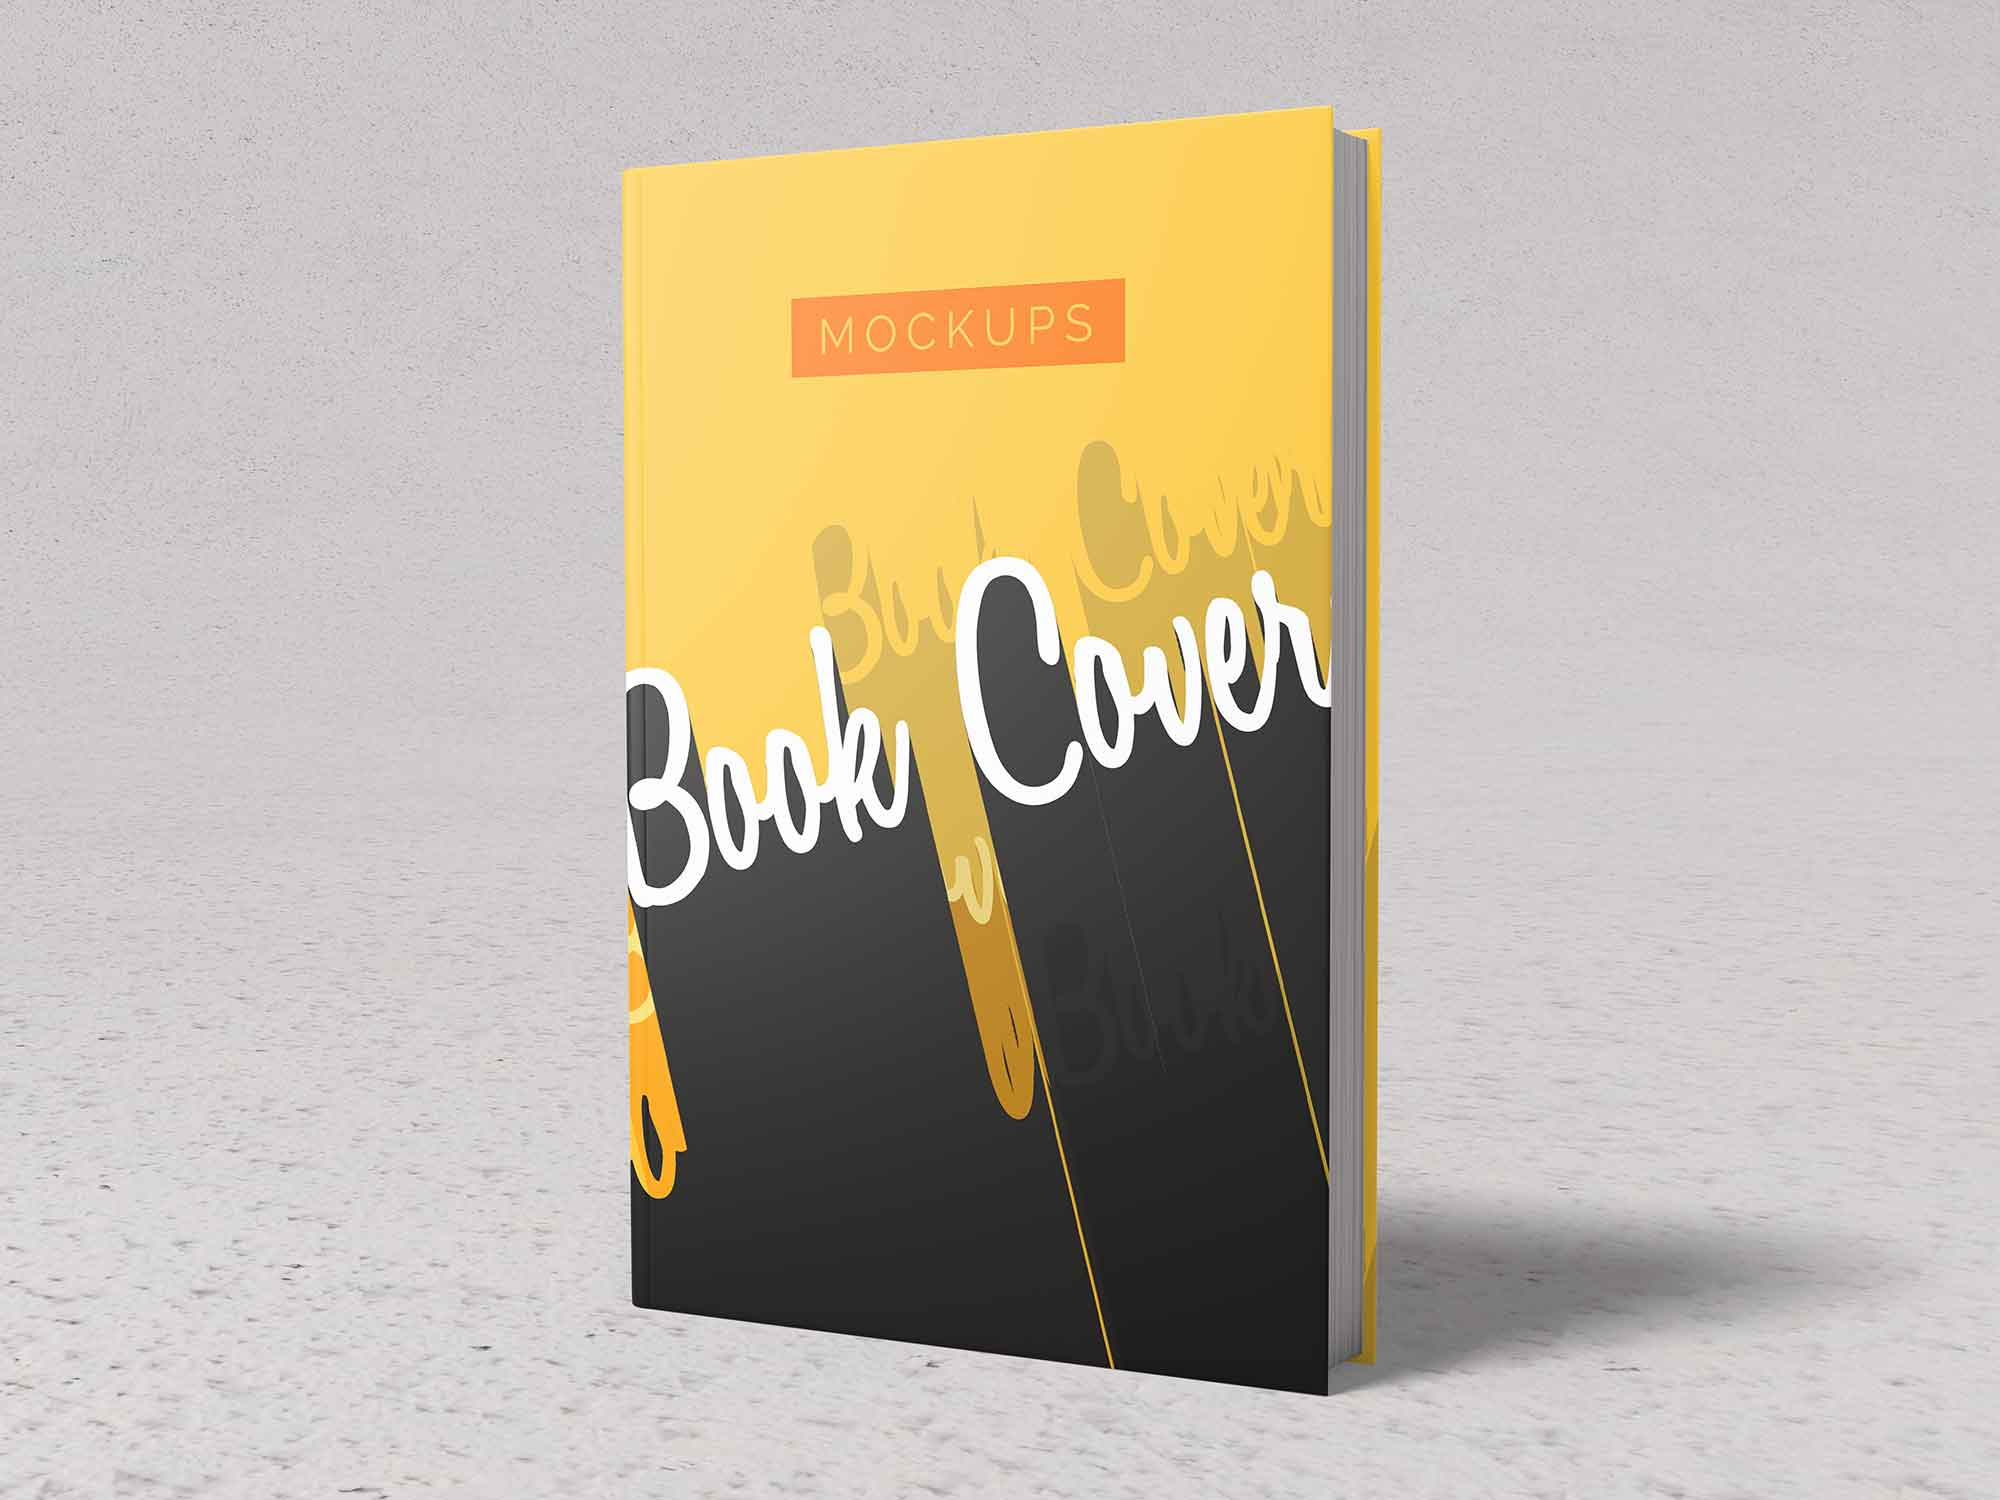 Front and Back Cover Book Mockup 3